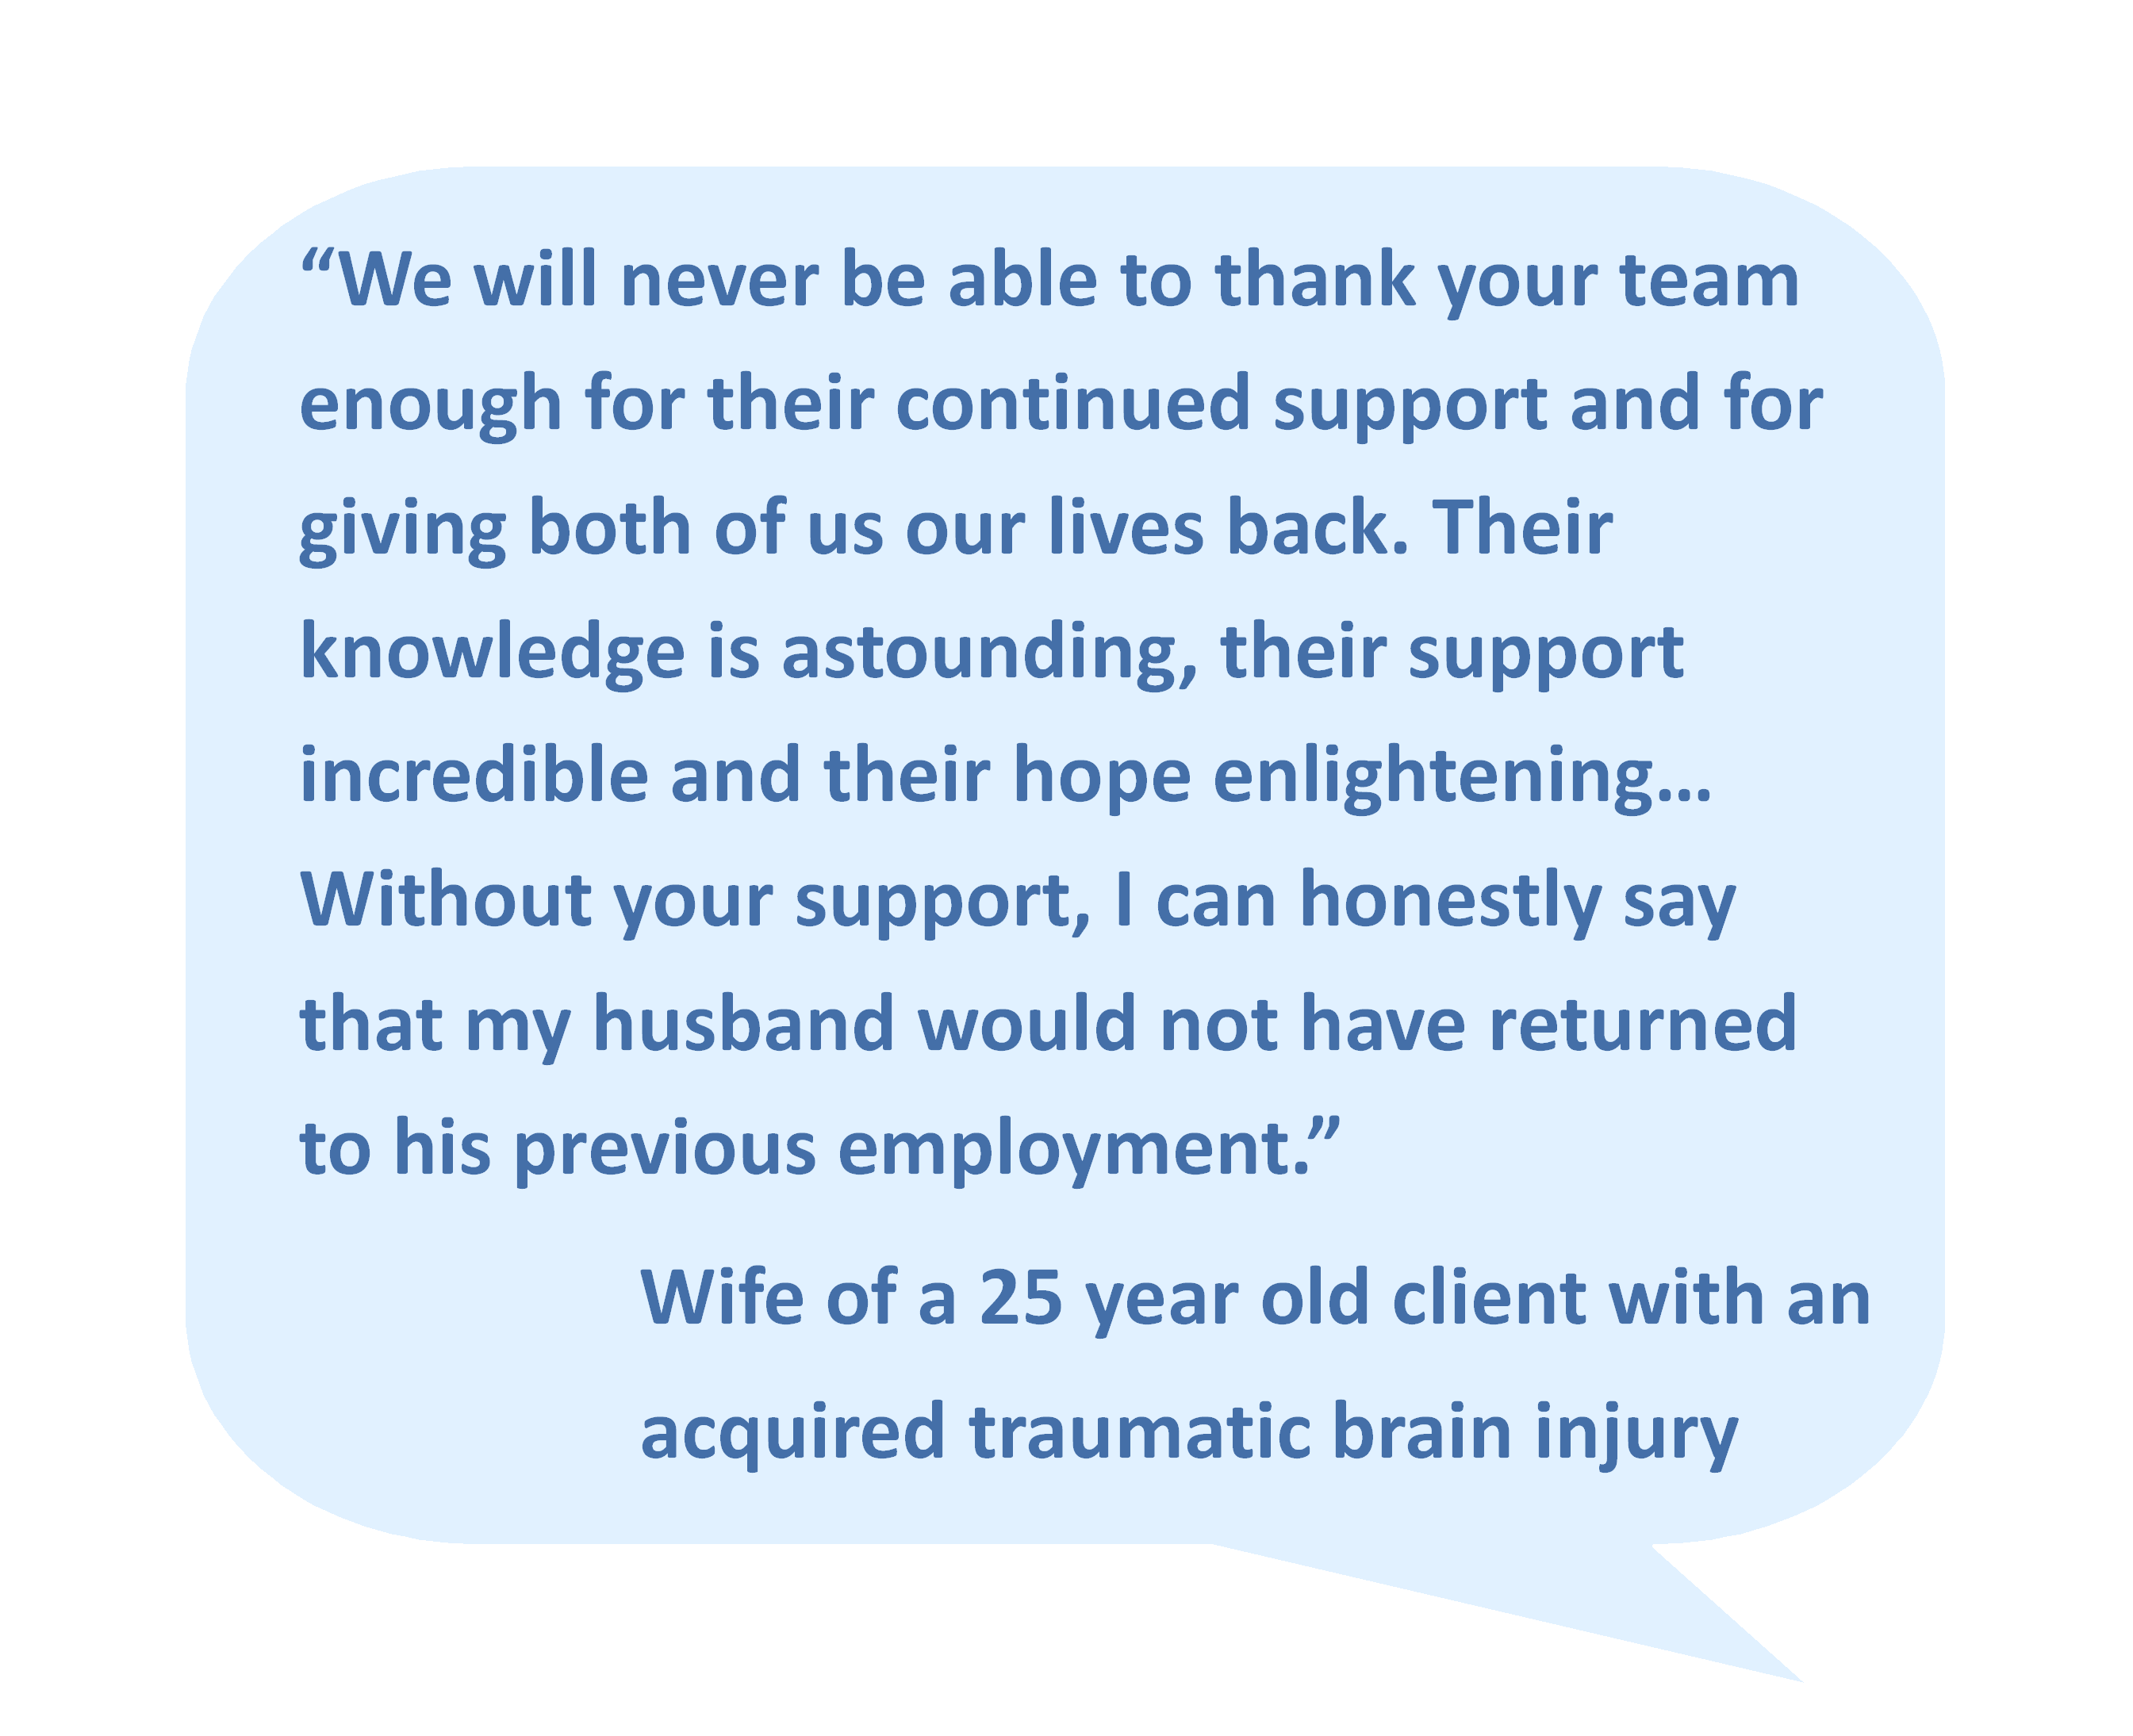 """We will never be able to thank your team enough for their continued support and for giving both of us our lives back. Their knowledge is astounding, their support incredible and their hope enlightening… Without your support, I can honestly say that my husband would not have returned to his previous employment."" Wife of a 25 year old client with an acquired traumatic brain injury"